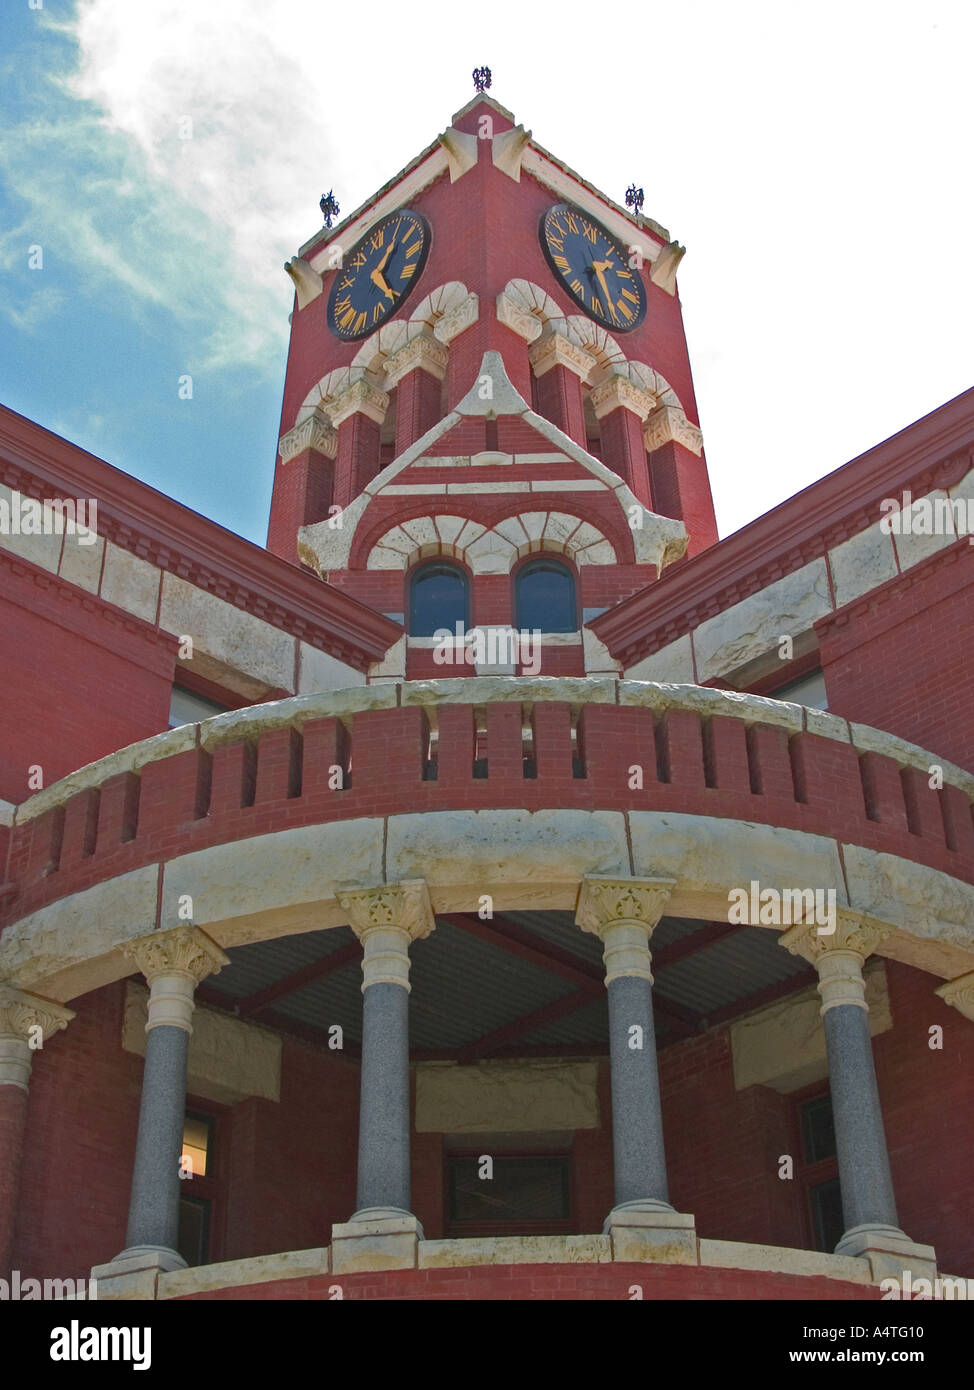 Clock Tower Balcony Lee County Courthouse Giddings Texas Detail view of Romanesque octagonal structure built in 1899 - Stock Image